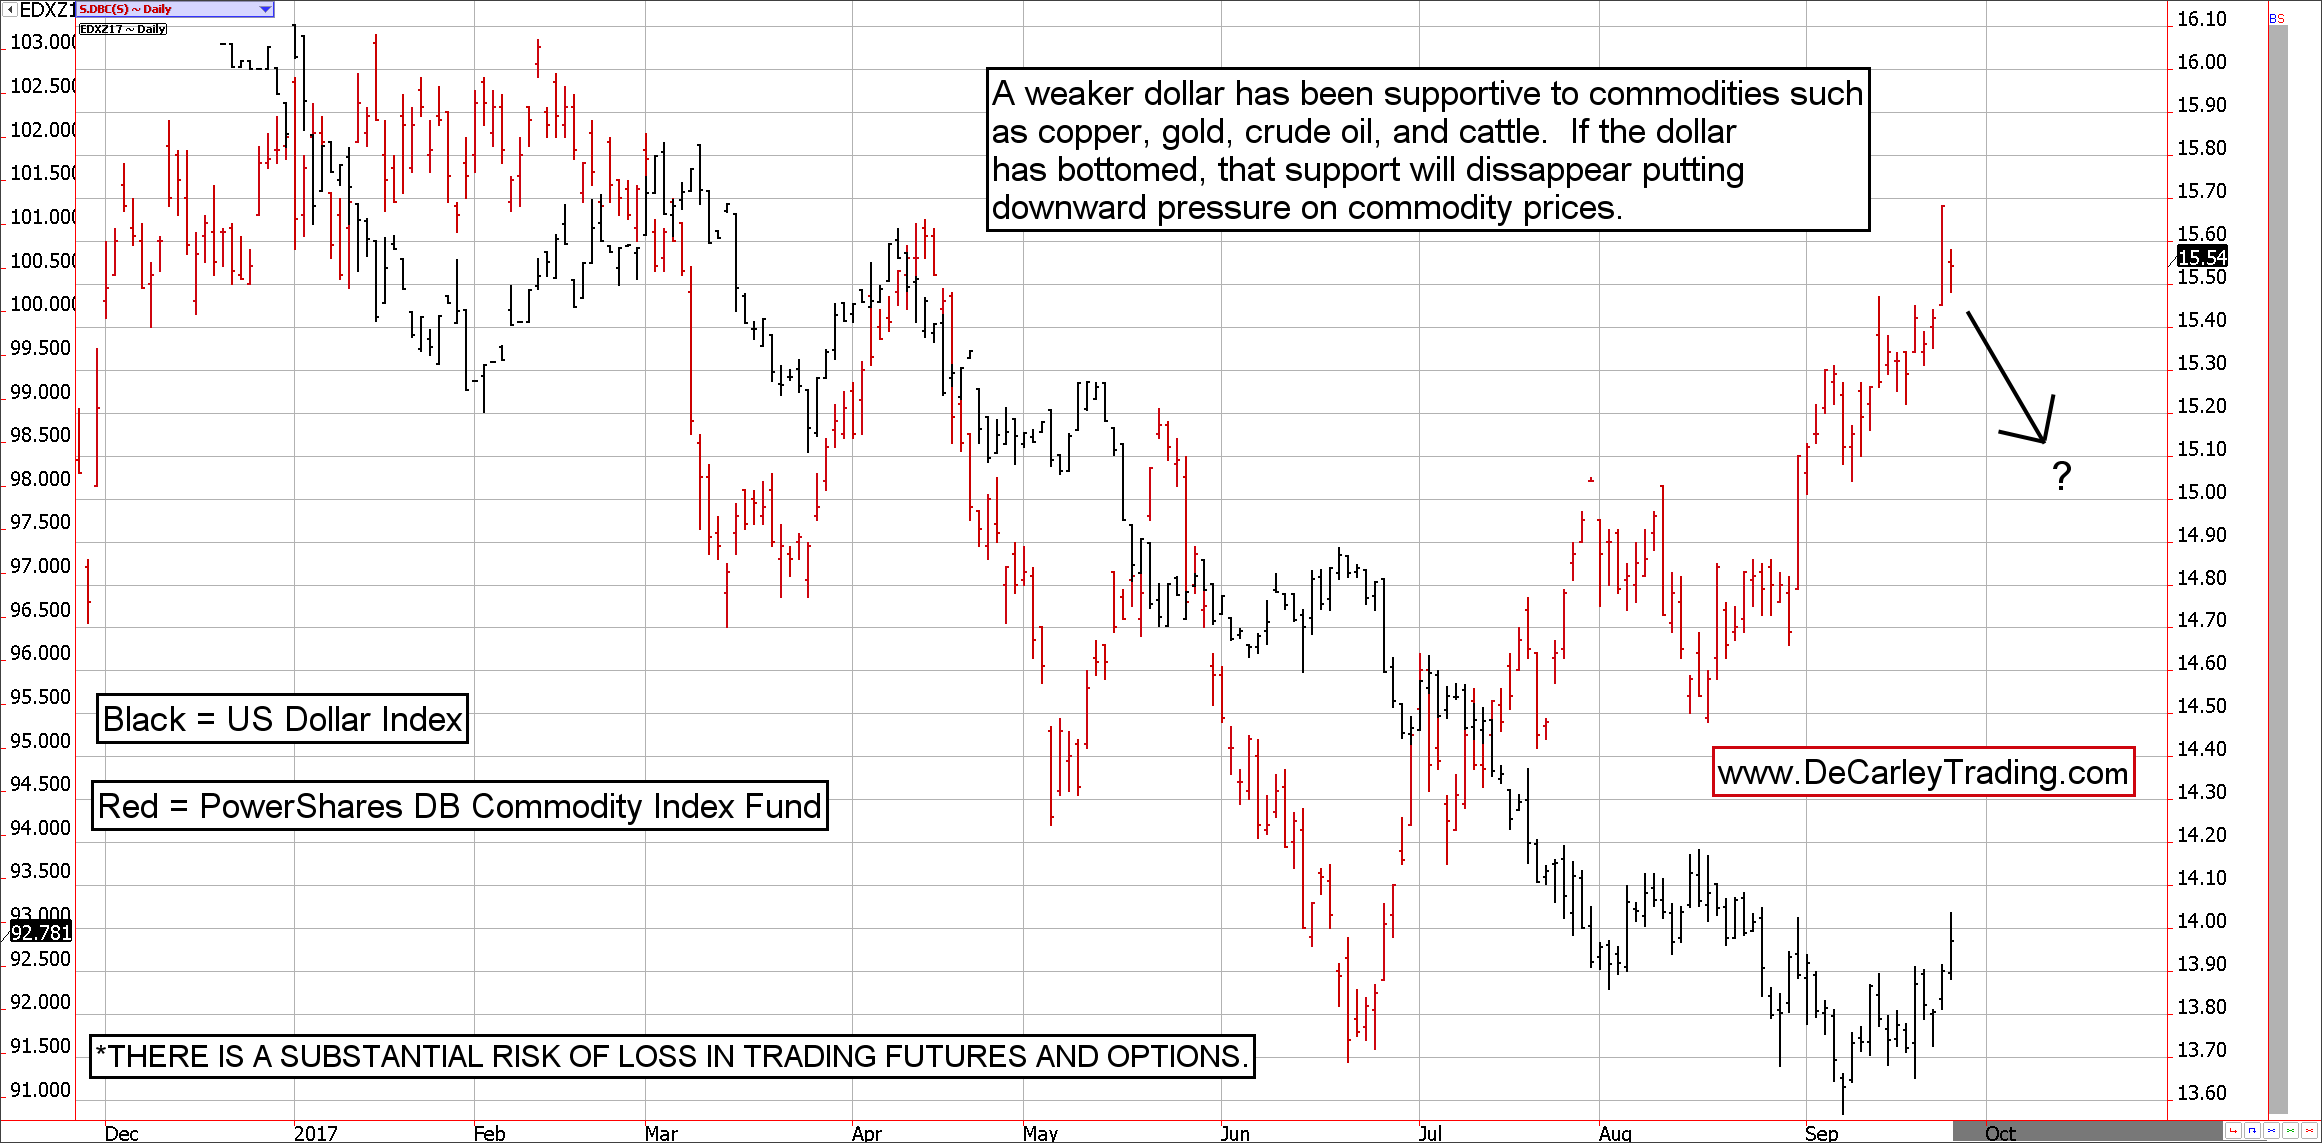 US Dollar Index Futures vs PowerShares Commodity Fund